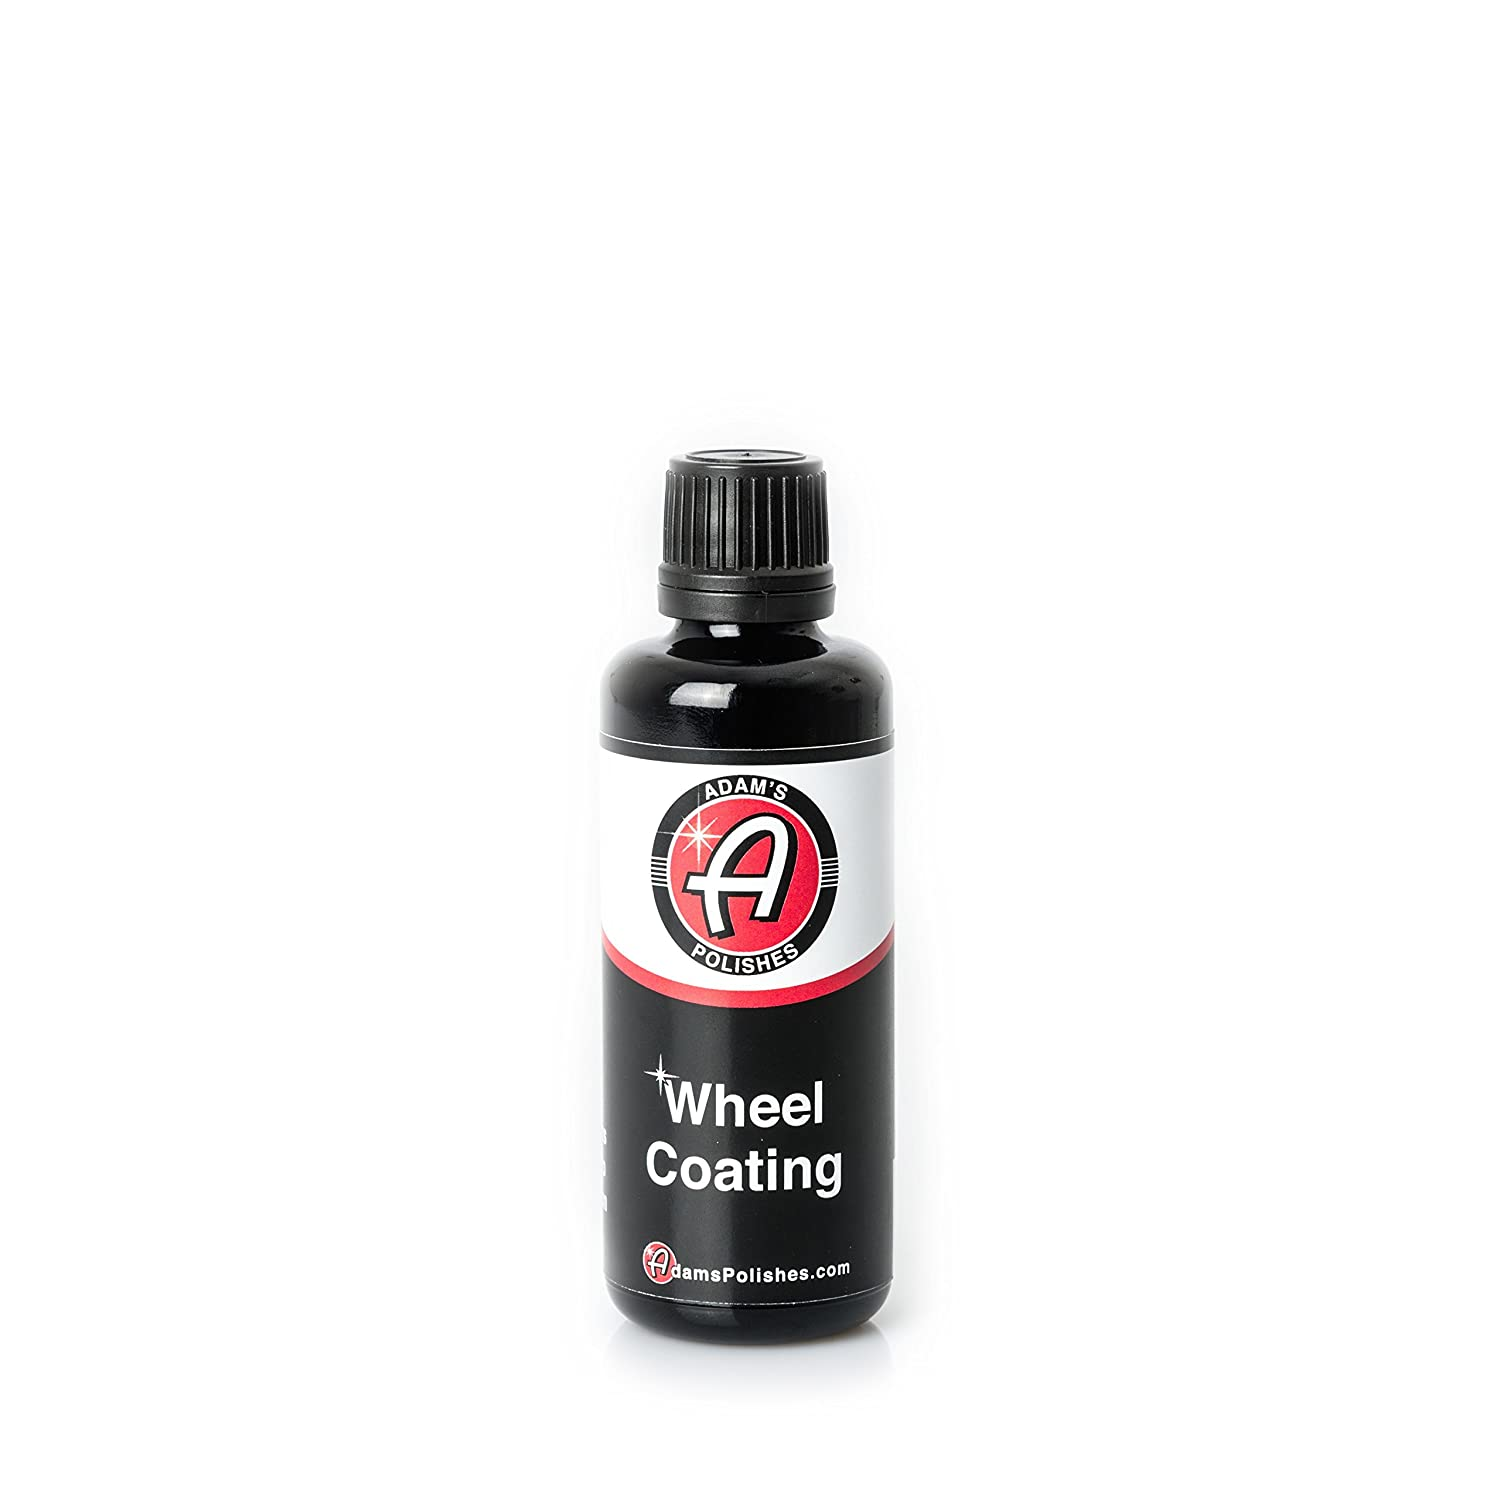 Adam's Ceramic Wheel Coating - 9H Hardness Ceramic Coating - Long Lasting Protection That Beads and Repels Water (Complete Kit) Adam' s Polishes